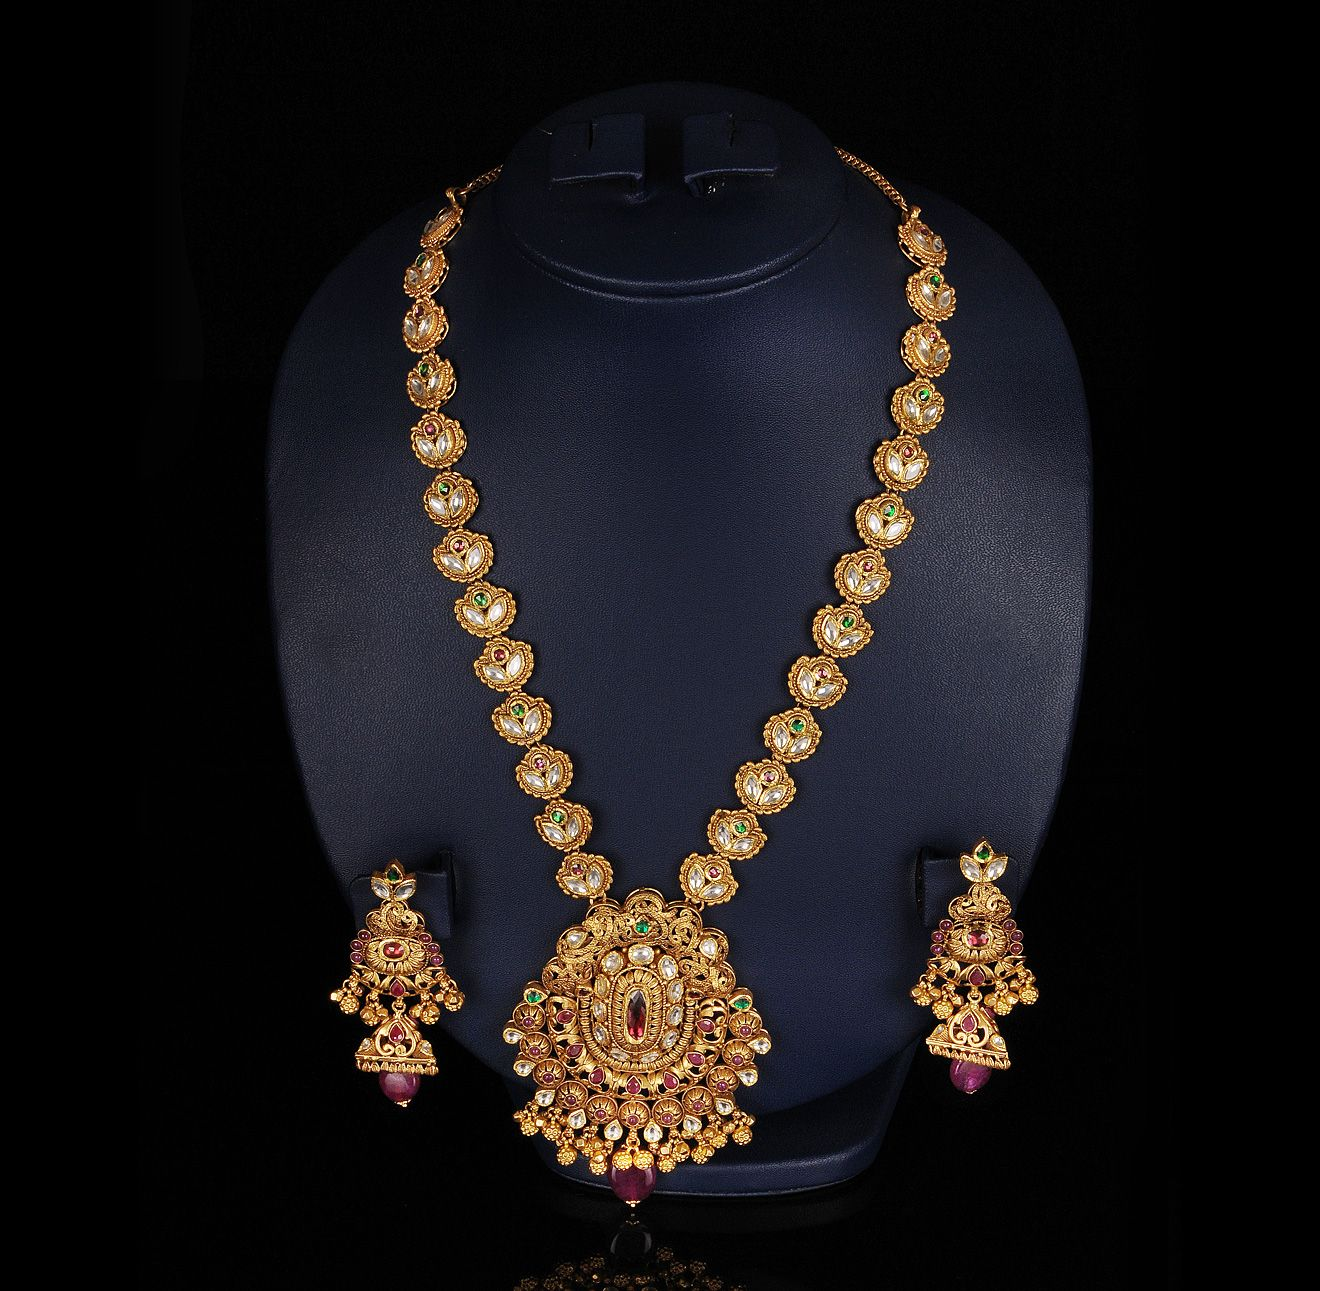 1 stylish gold necklace | jwellary | Pinterest | Indian jewelry ...